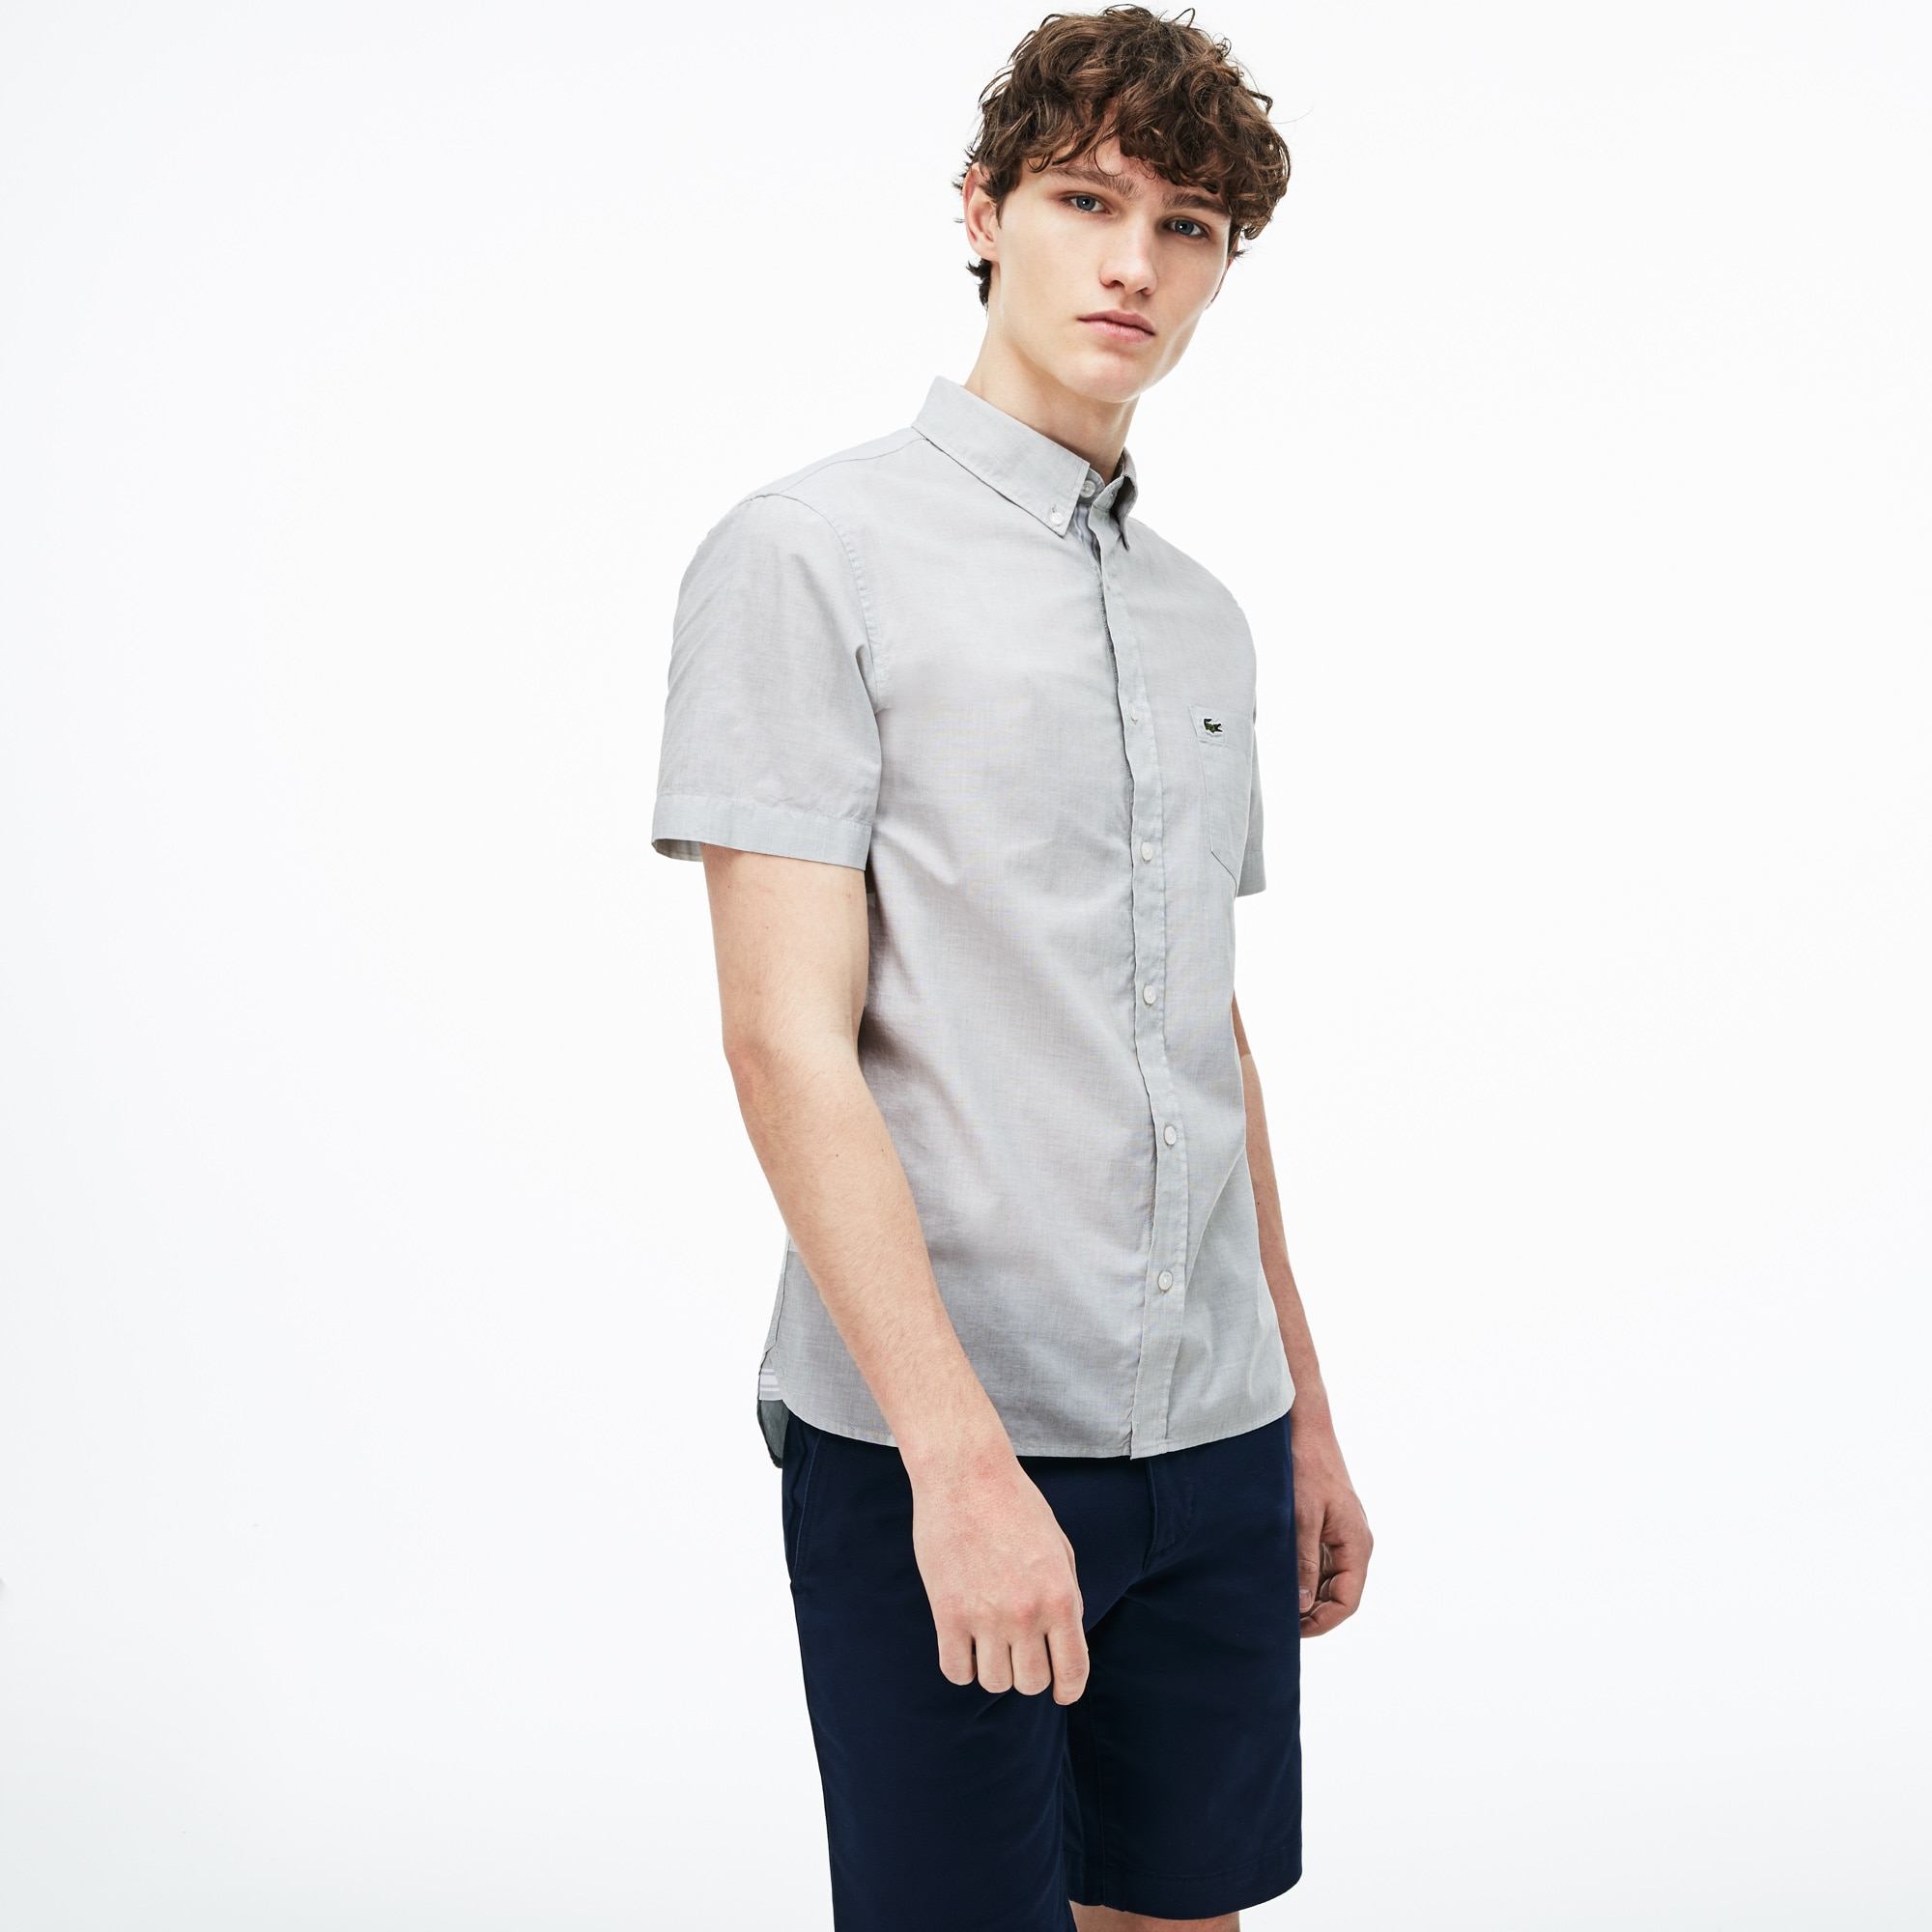 Men's Slim Fit Salt-And-Pepper Cotton Shirt